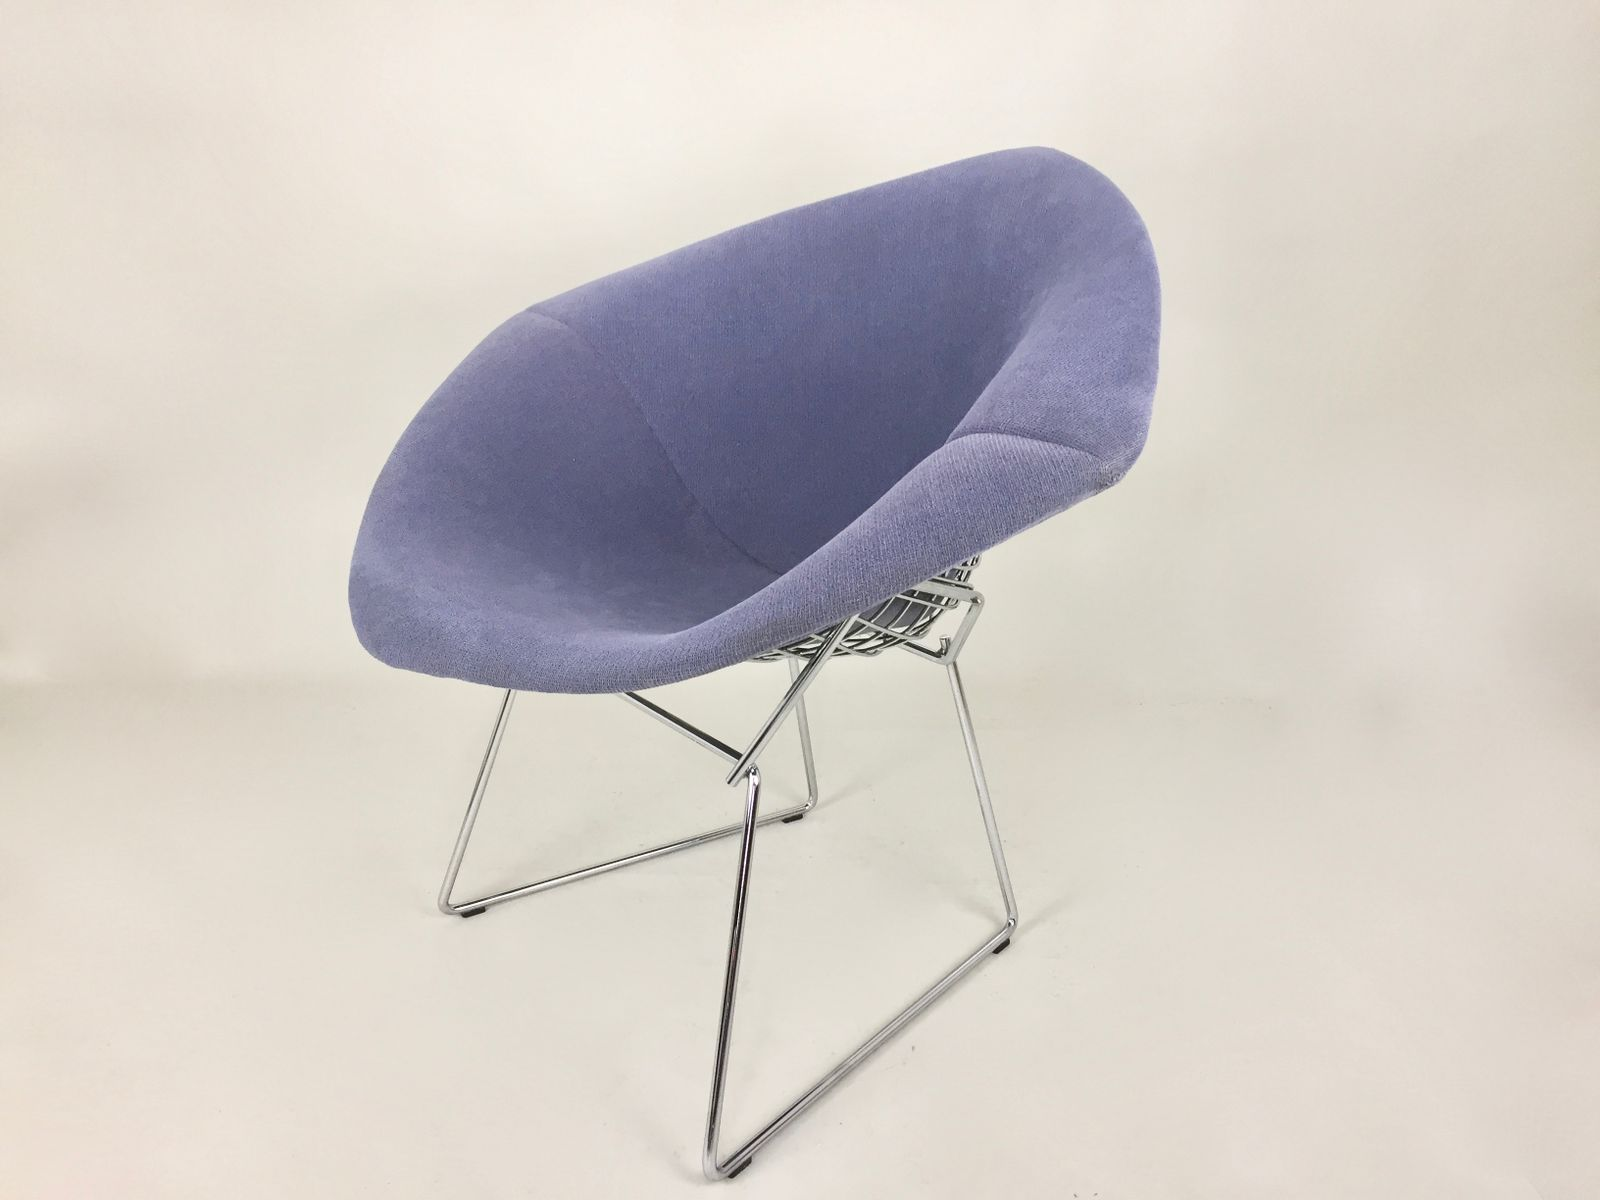 chaise blue diamond vintage par harry bertoia pour knoll en vente sur pamono. Black Bedroom Furniture Sets. Home Design Ideas